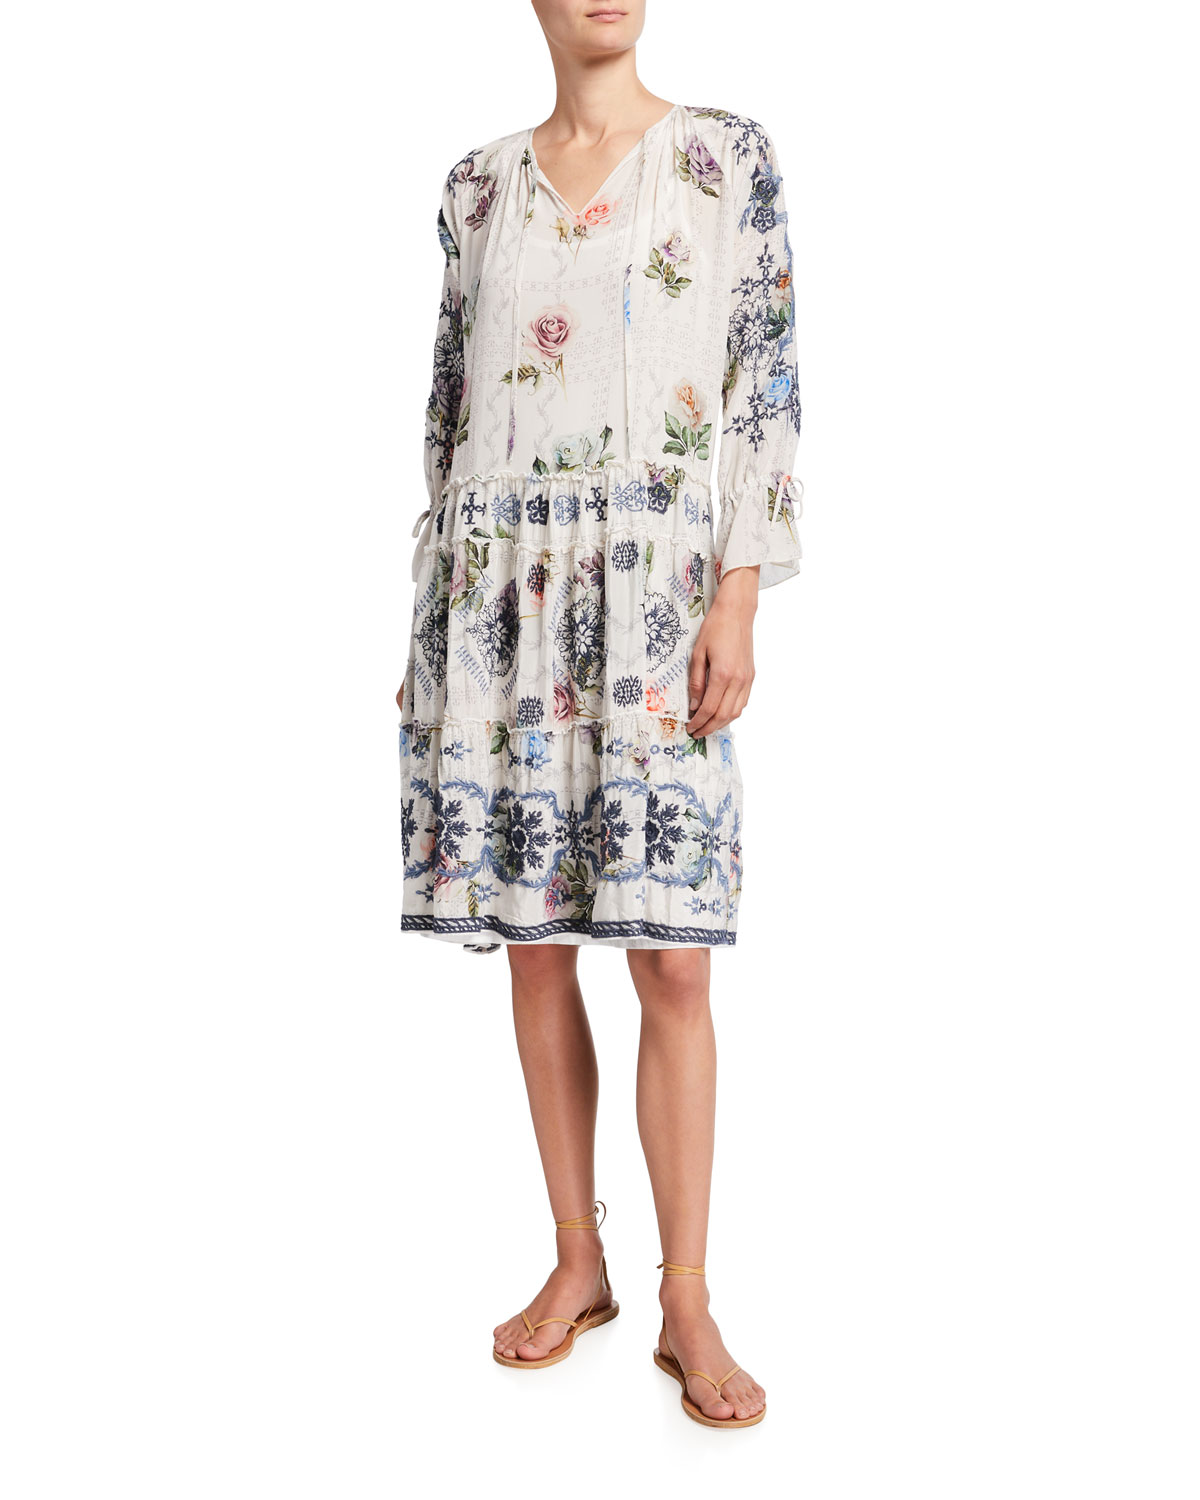 Johnny Was KAILEY FLORAL TIERED SILK CHIFFON DRESS